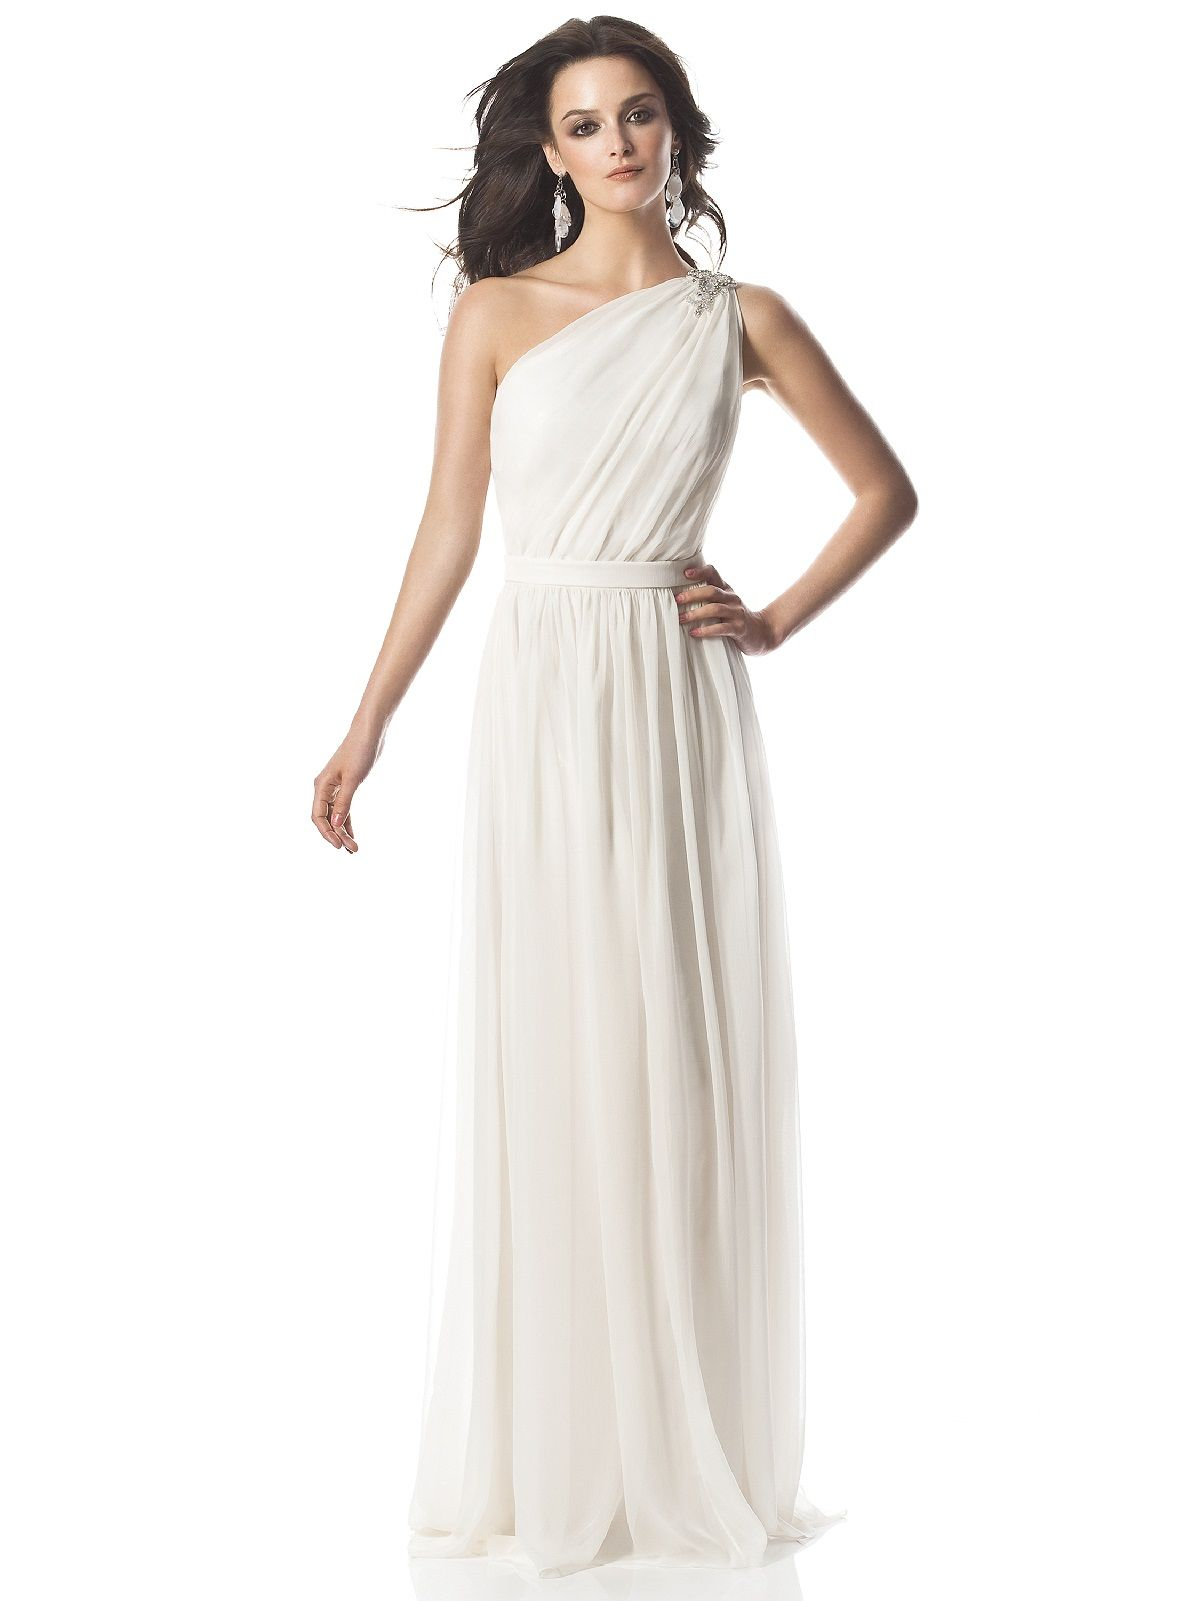 cc033e72b57 obviously this is a wedding dress, but it would be very pretty knee length  and navy something to think about for when i'm better at sewing